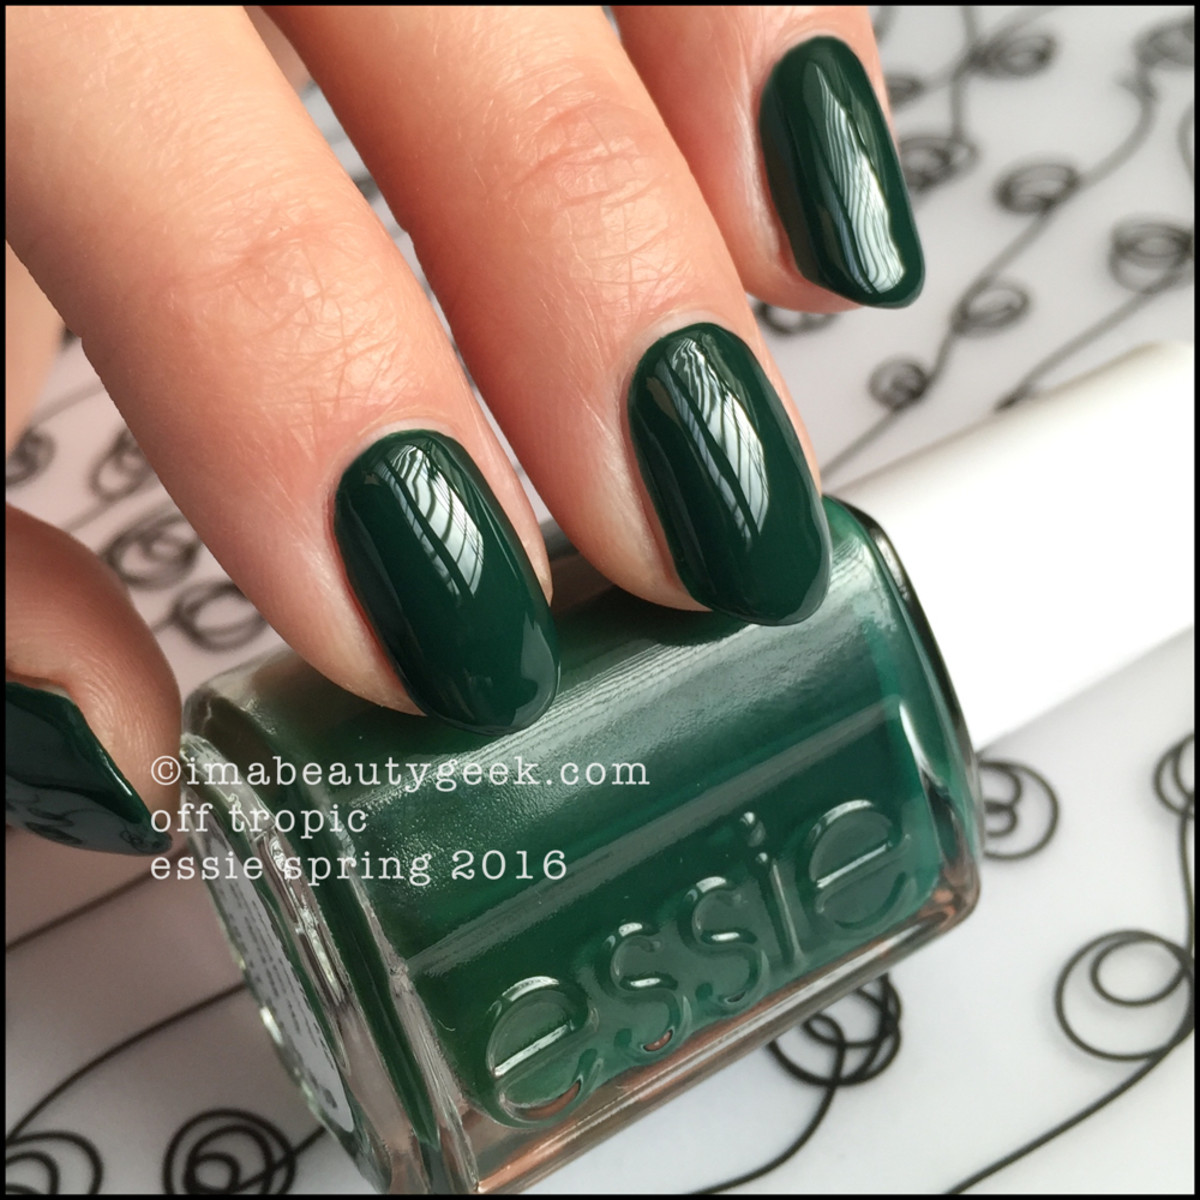 ESSIE SPRING 2016: THE COMPLETE MANIGEEK GUIDE - Beautygeeks